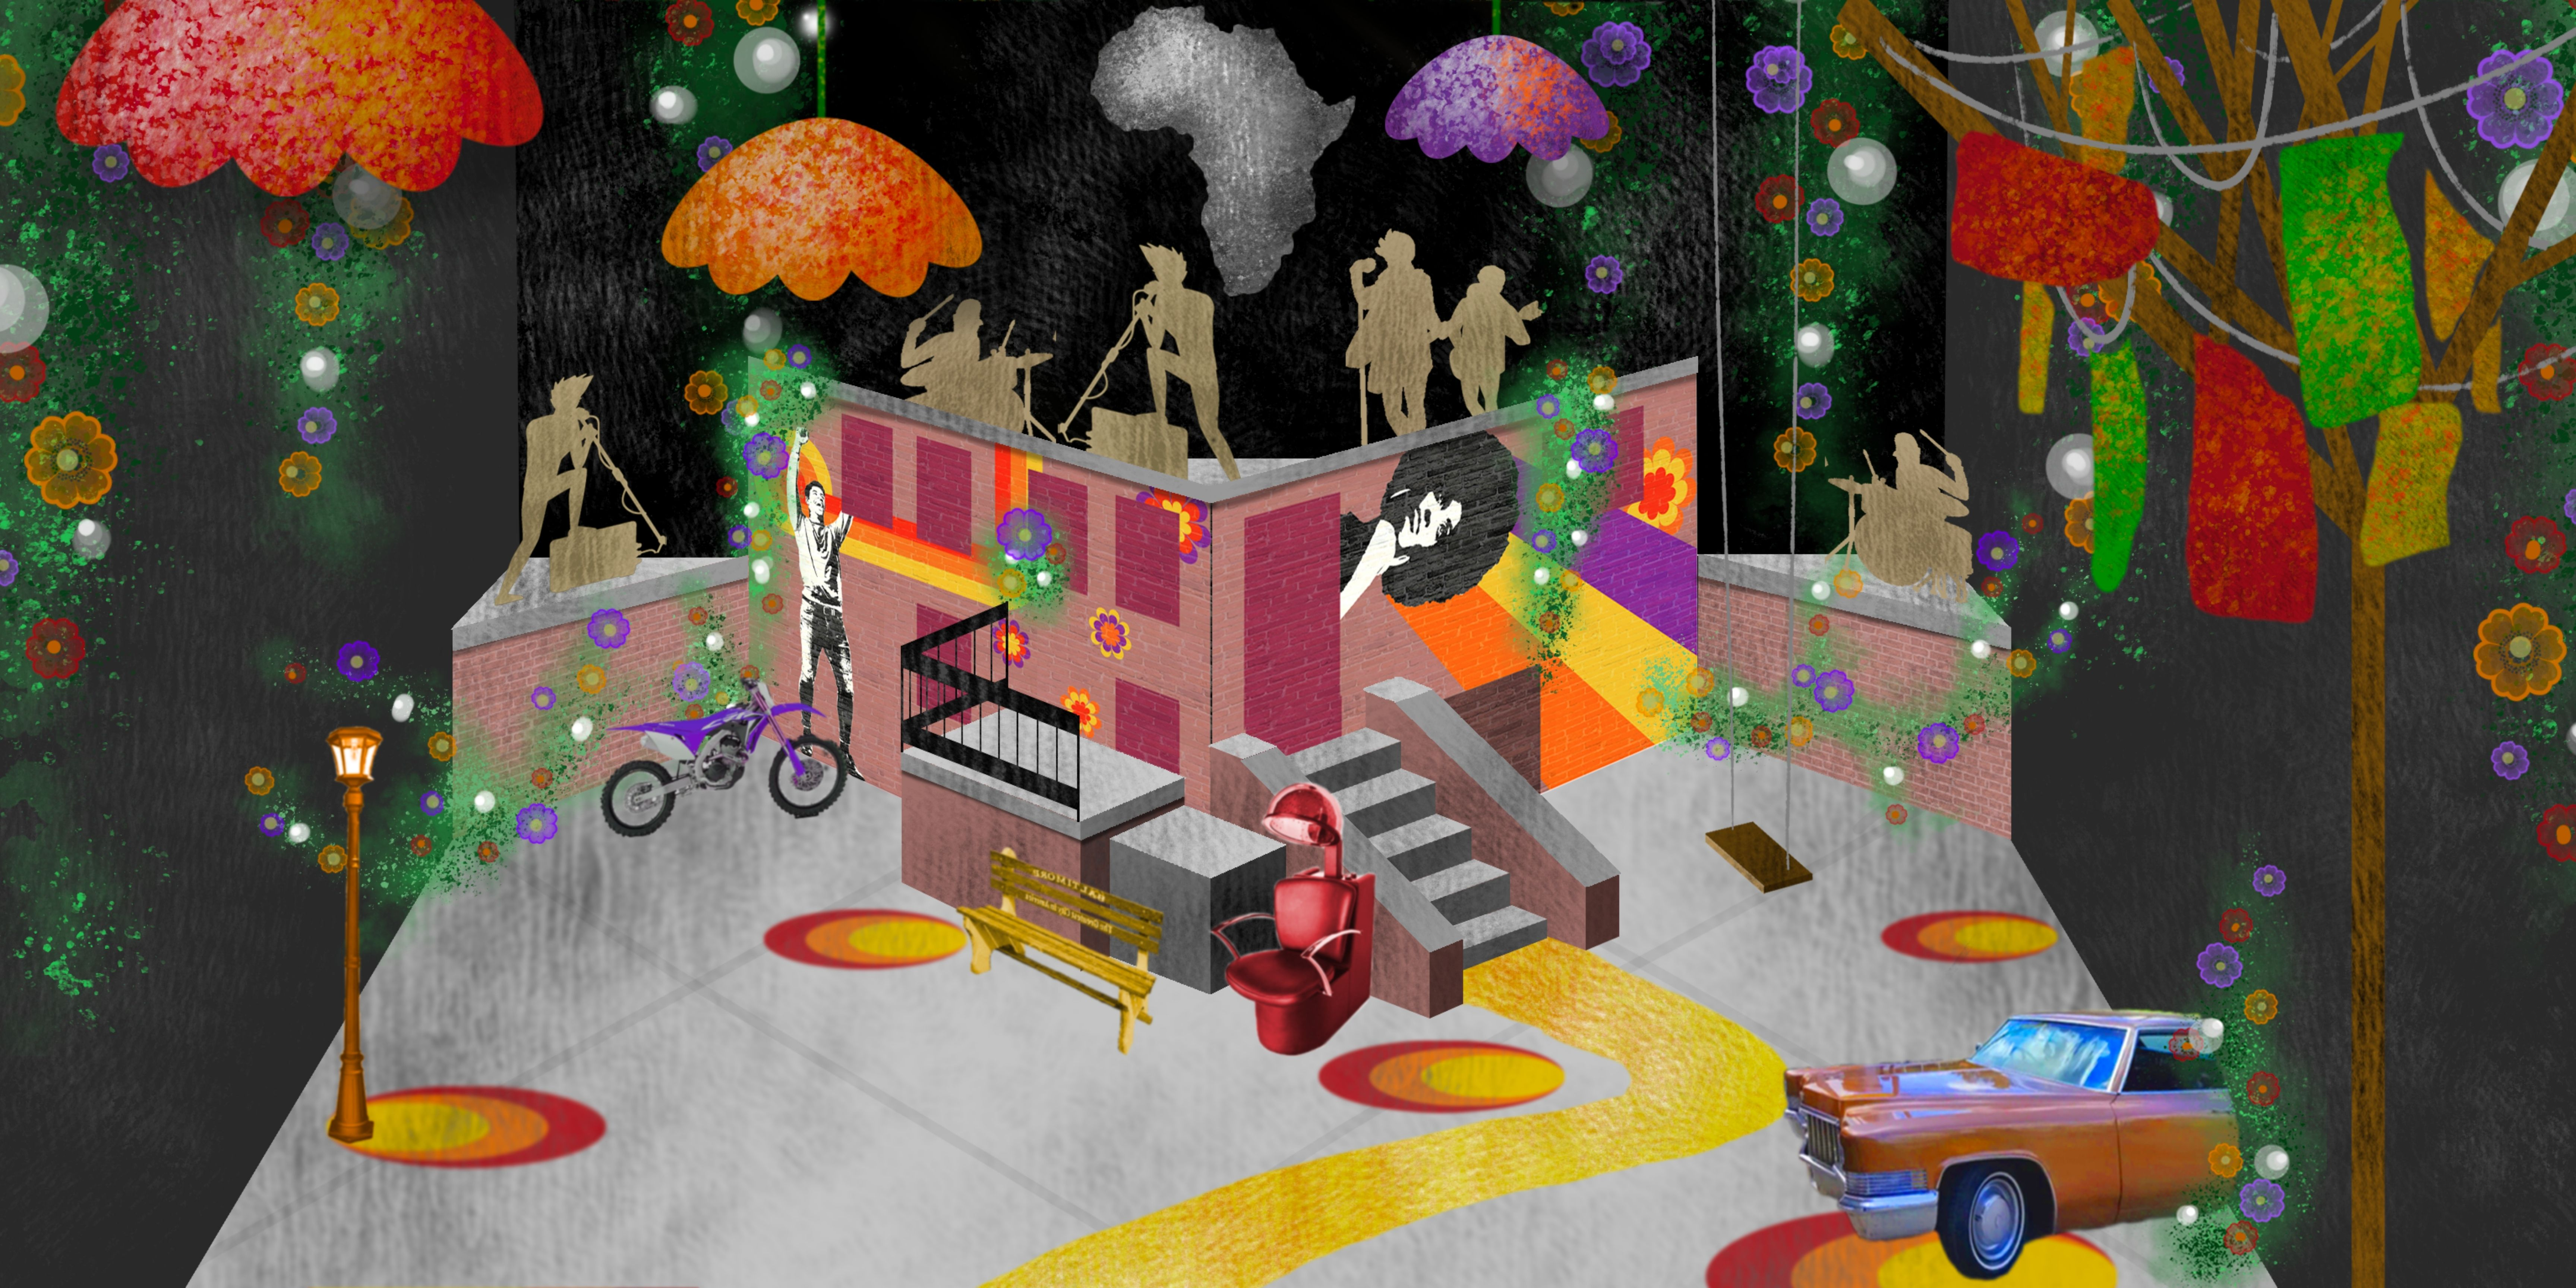 an urban floral fantasy set with musicians on a colorful geometric stage